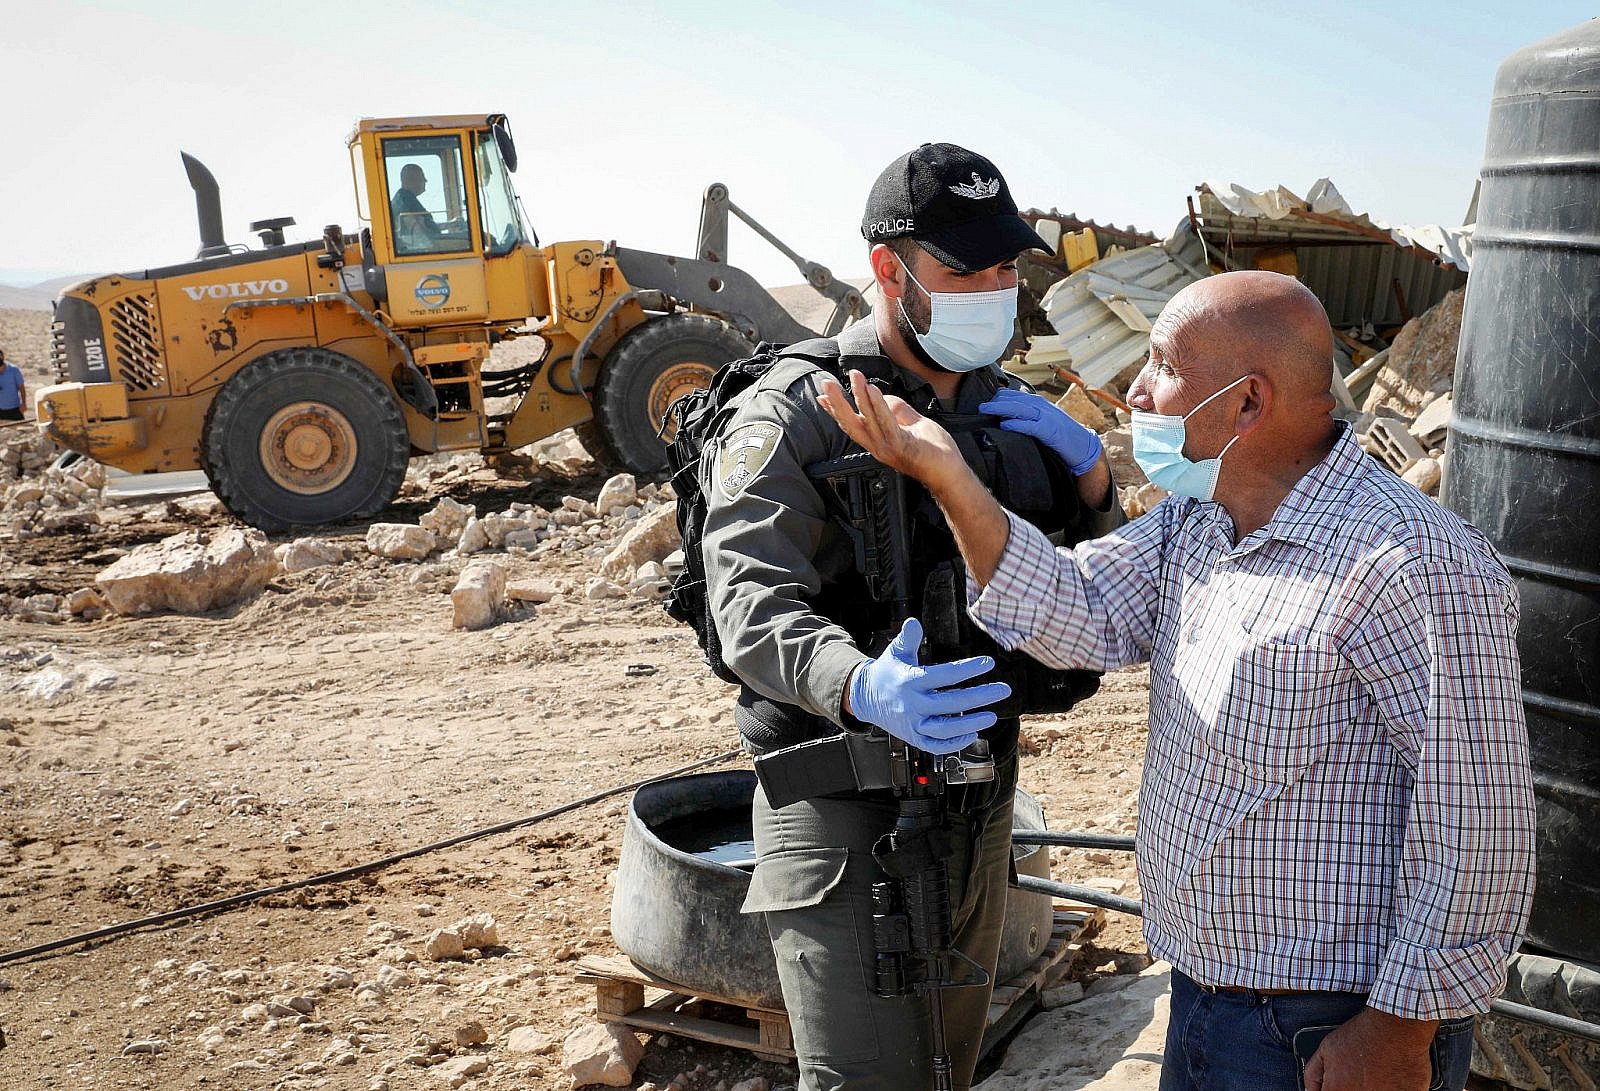 A Palestinian man argues with Israeli forces after they demolish his house and shed, near the West Bank town of Hebron, October 18, 2020. (Wisam Hashlamoun/Flash90)